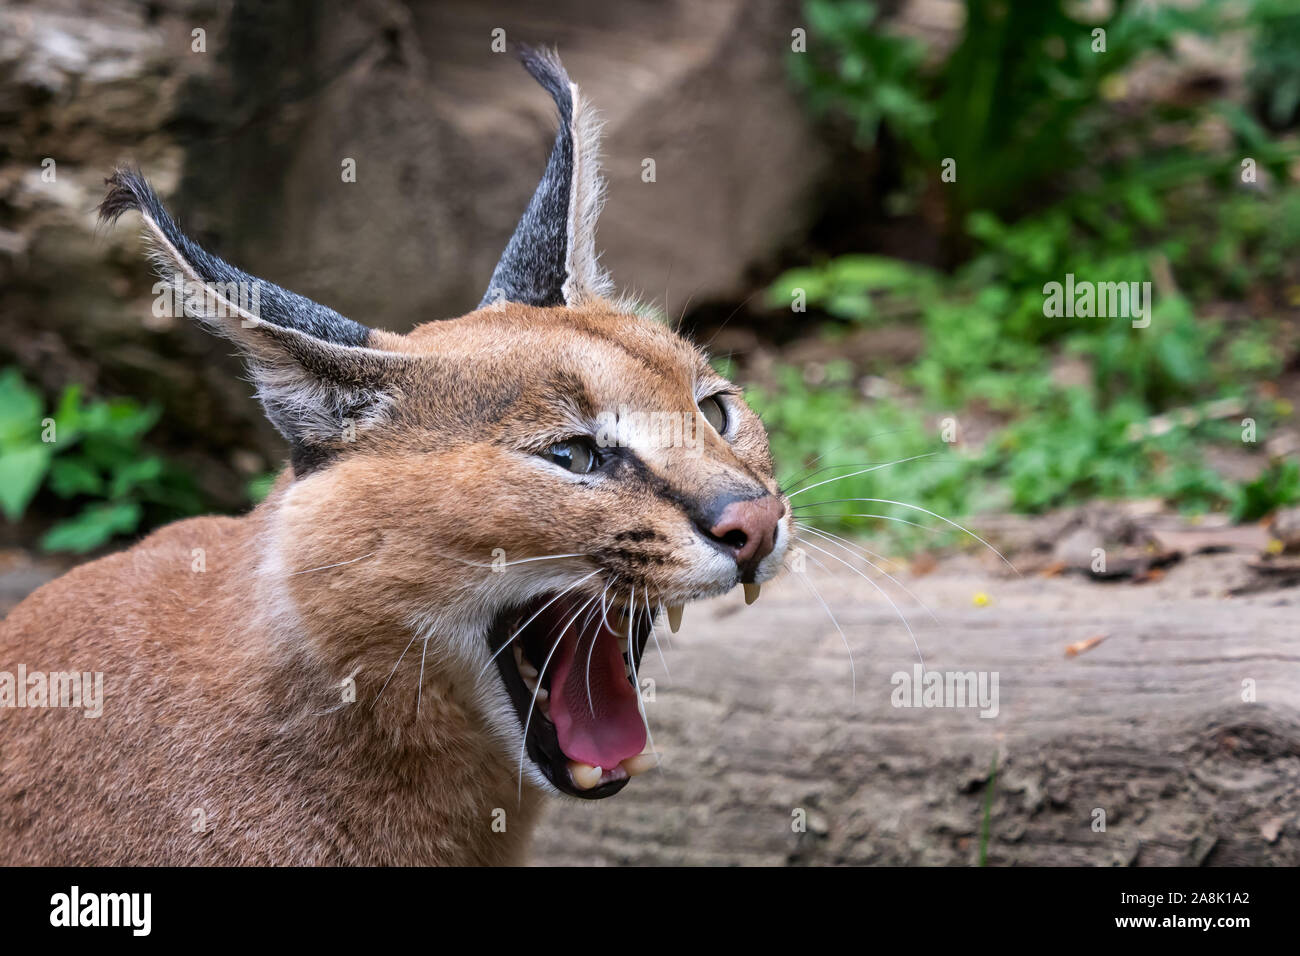 Cats With Long Tufted Ears High Resolution Stock Photography And Images Alamy